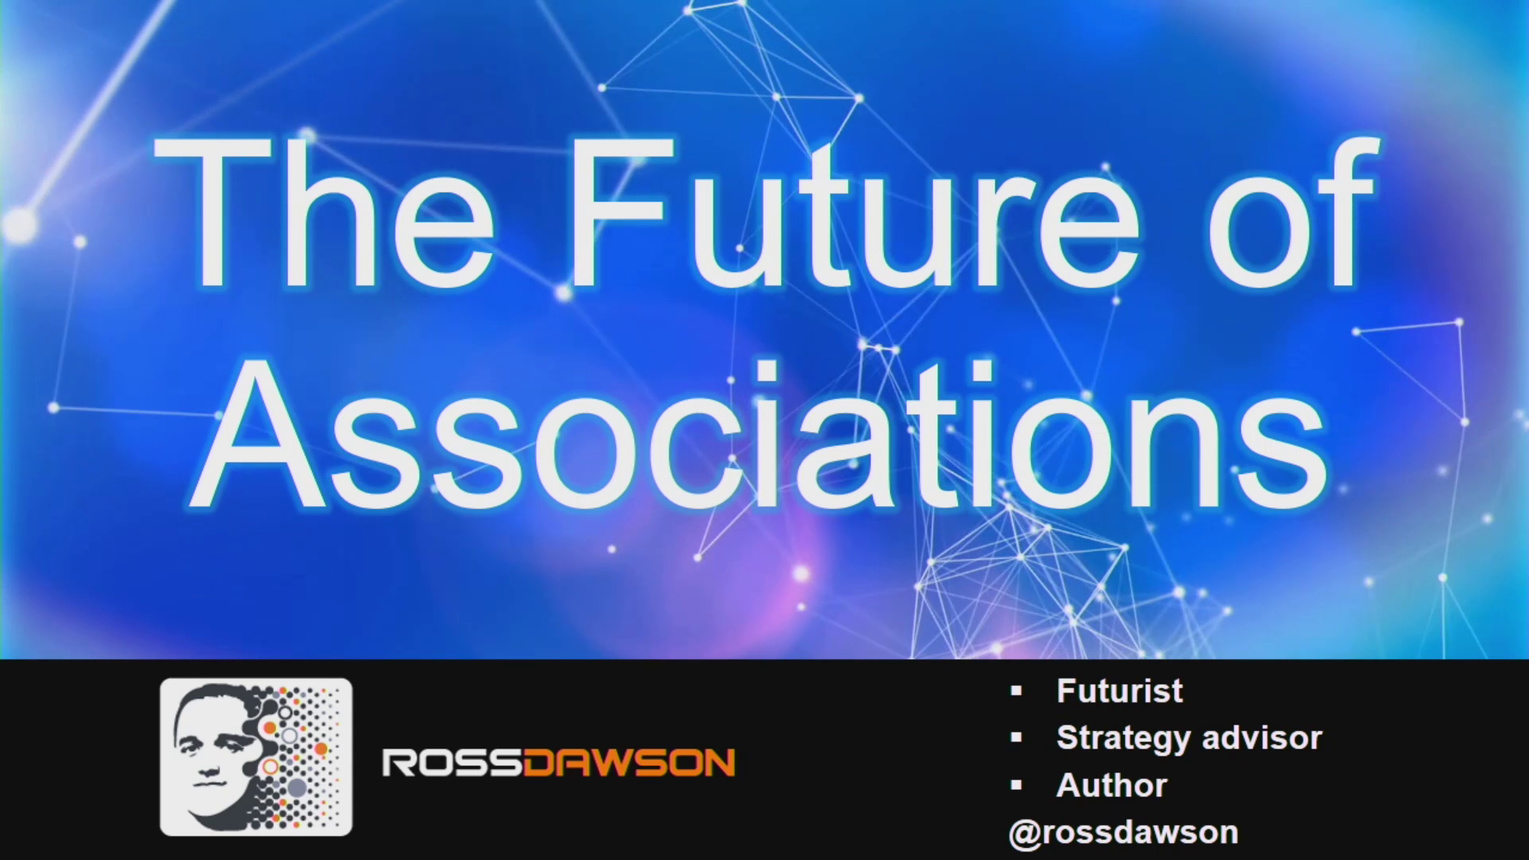 The Future of Associations - Ross Dawson Presentation from 2018 IEEE BoD Strategic Retreat